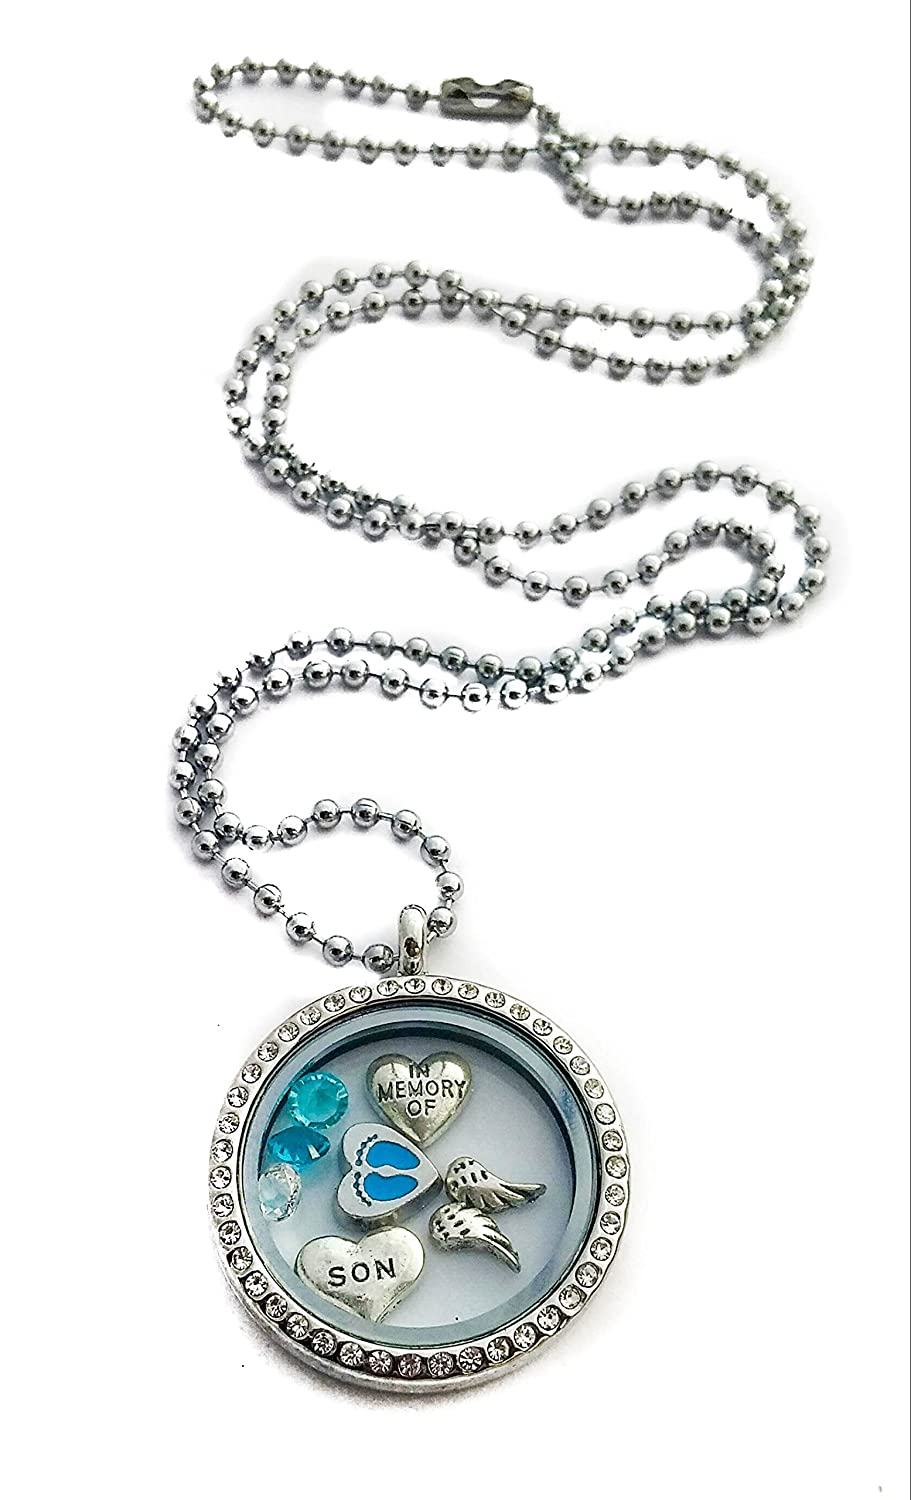 In Memory of My Son By Living Memory Lockets for Less Miscarriage Baby Boy